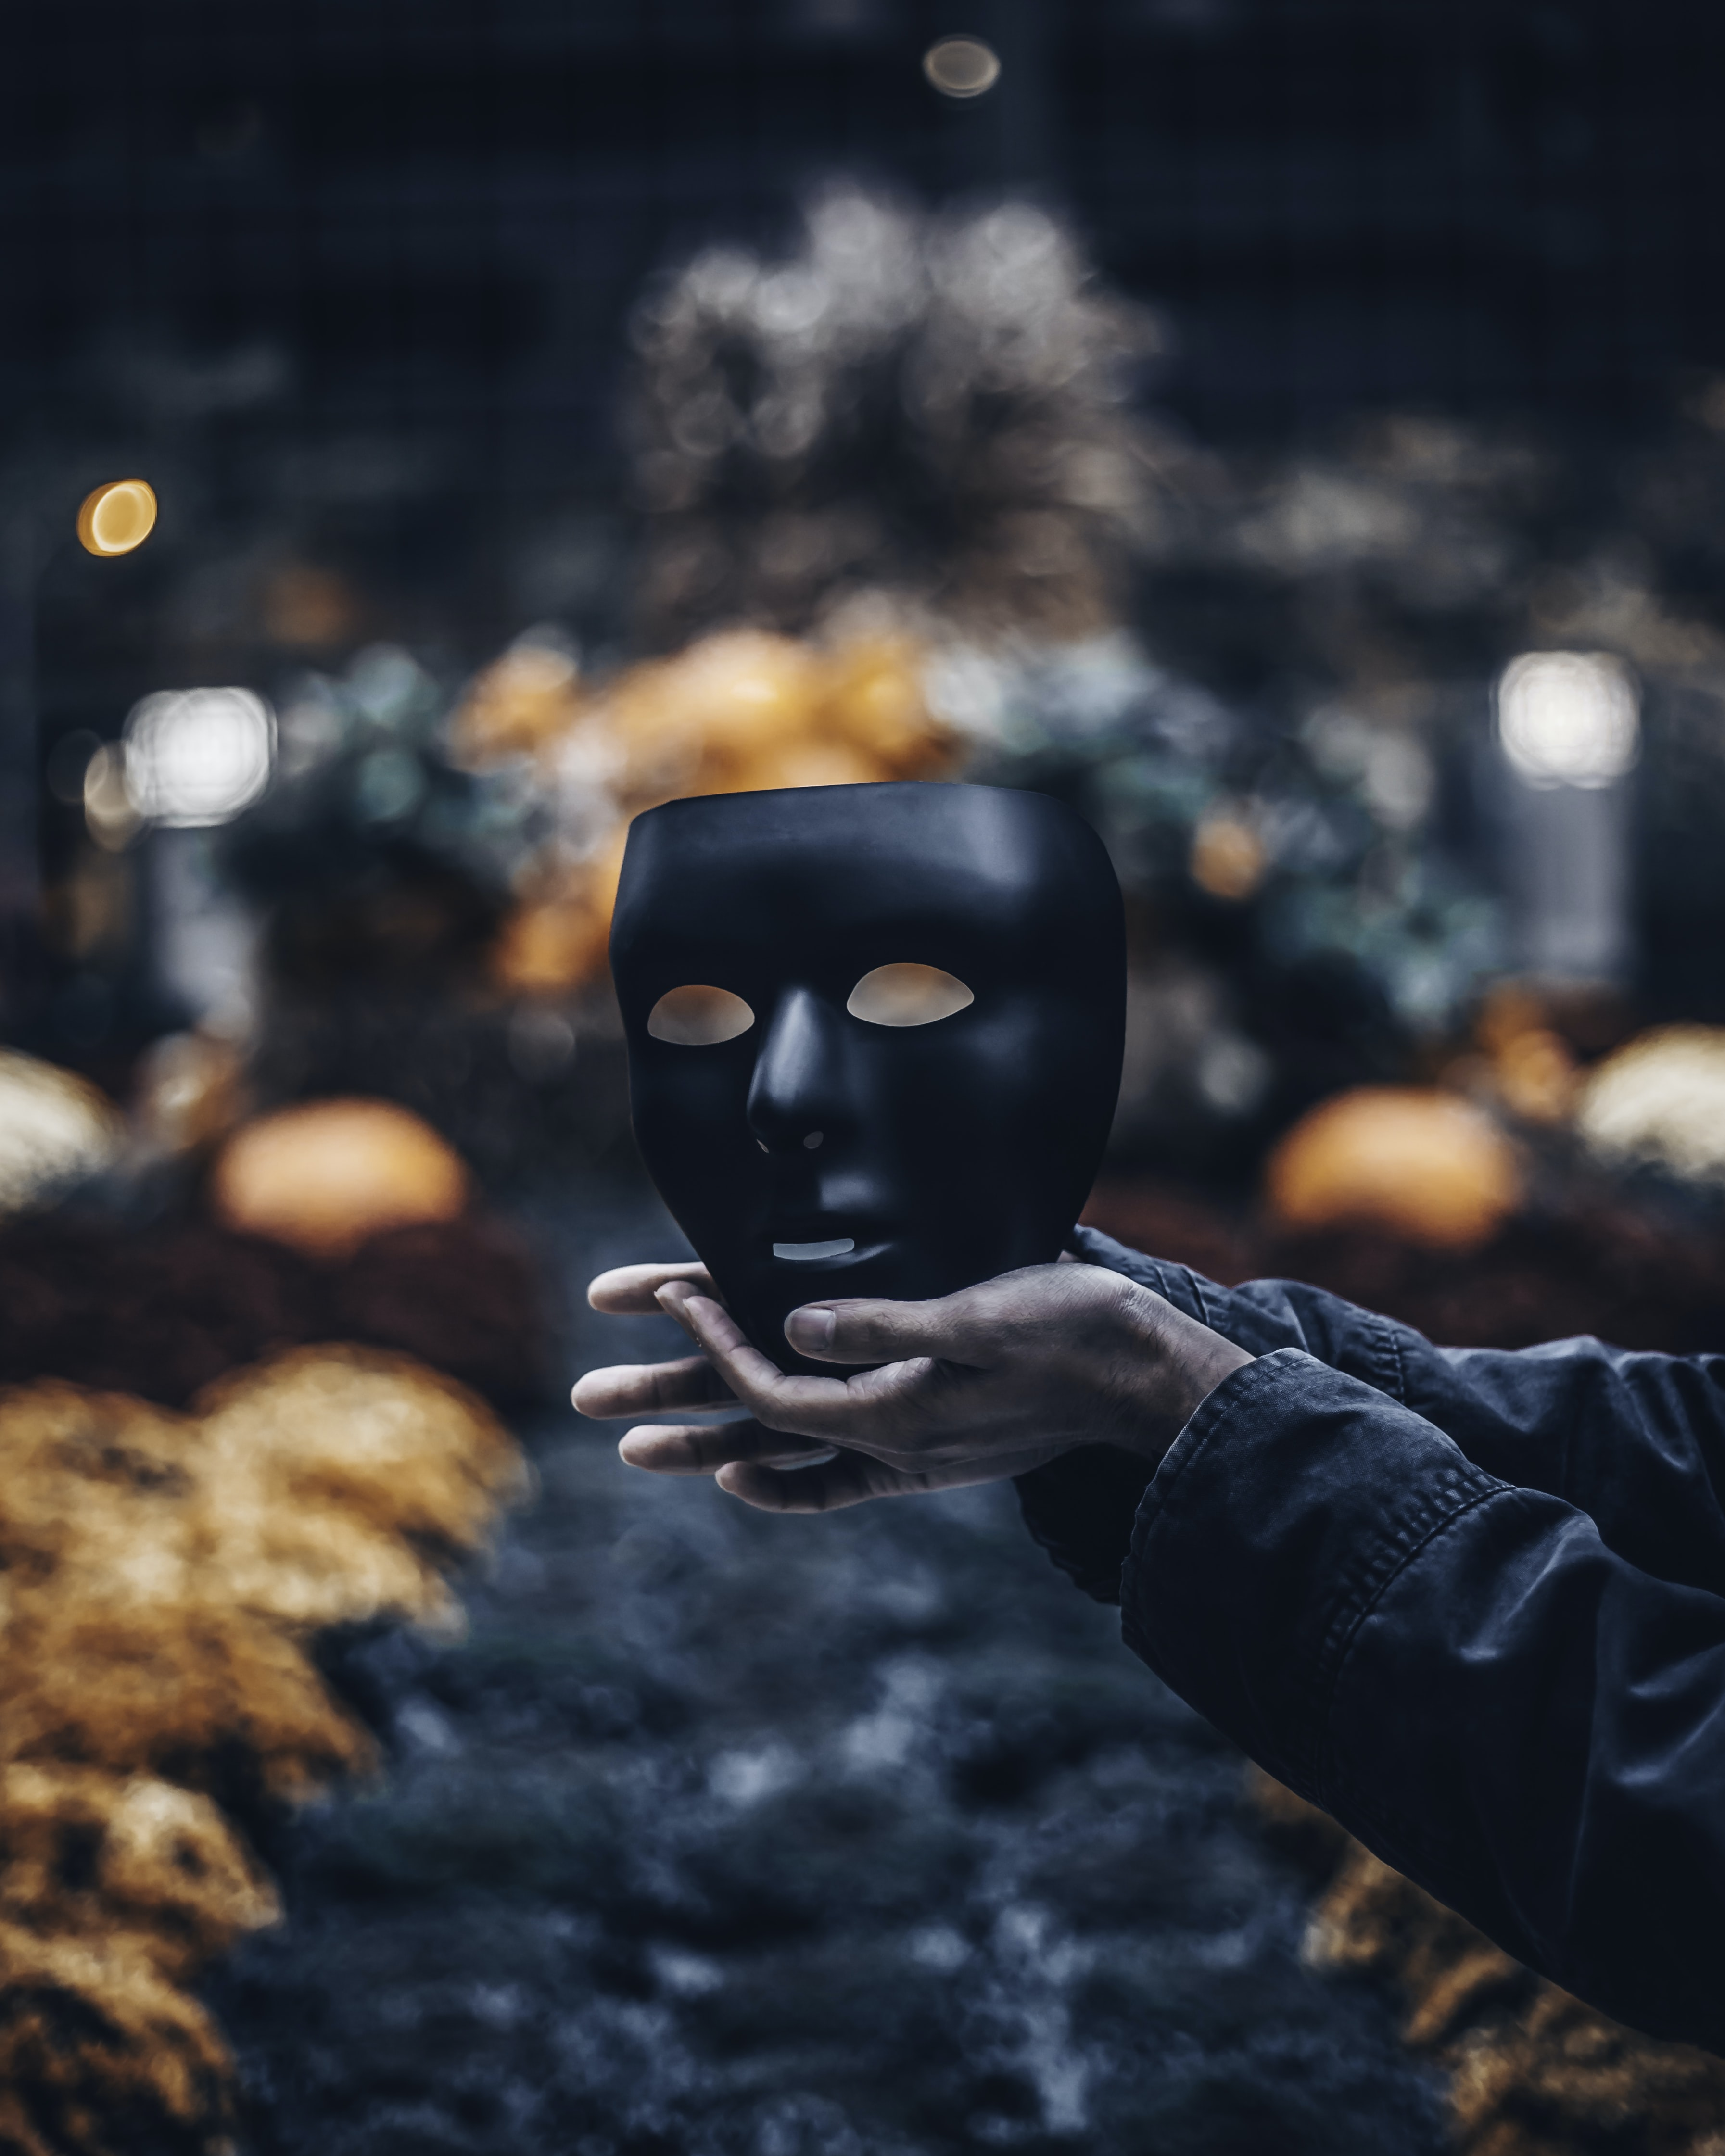 Behind my mask grief stories